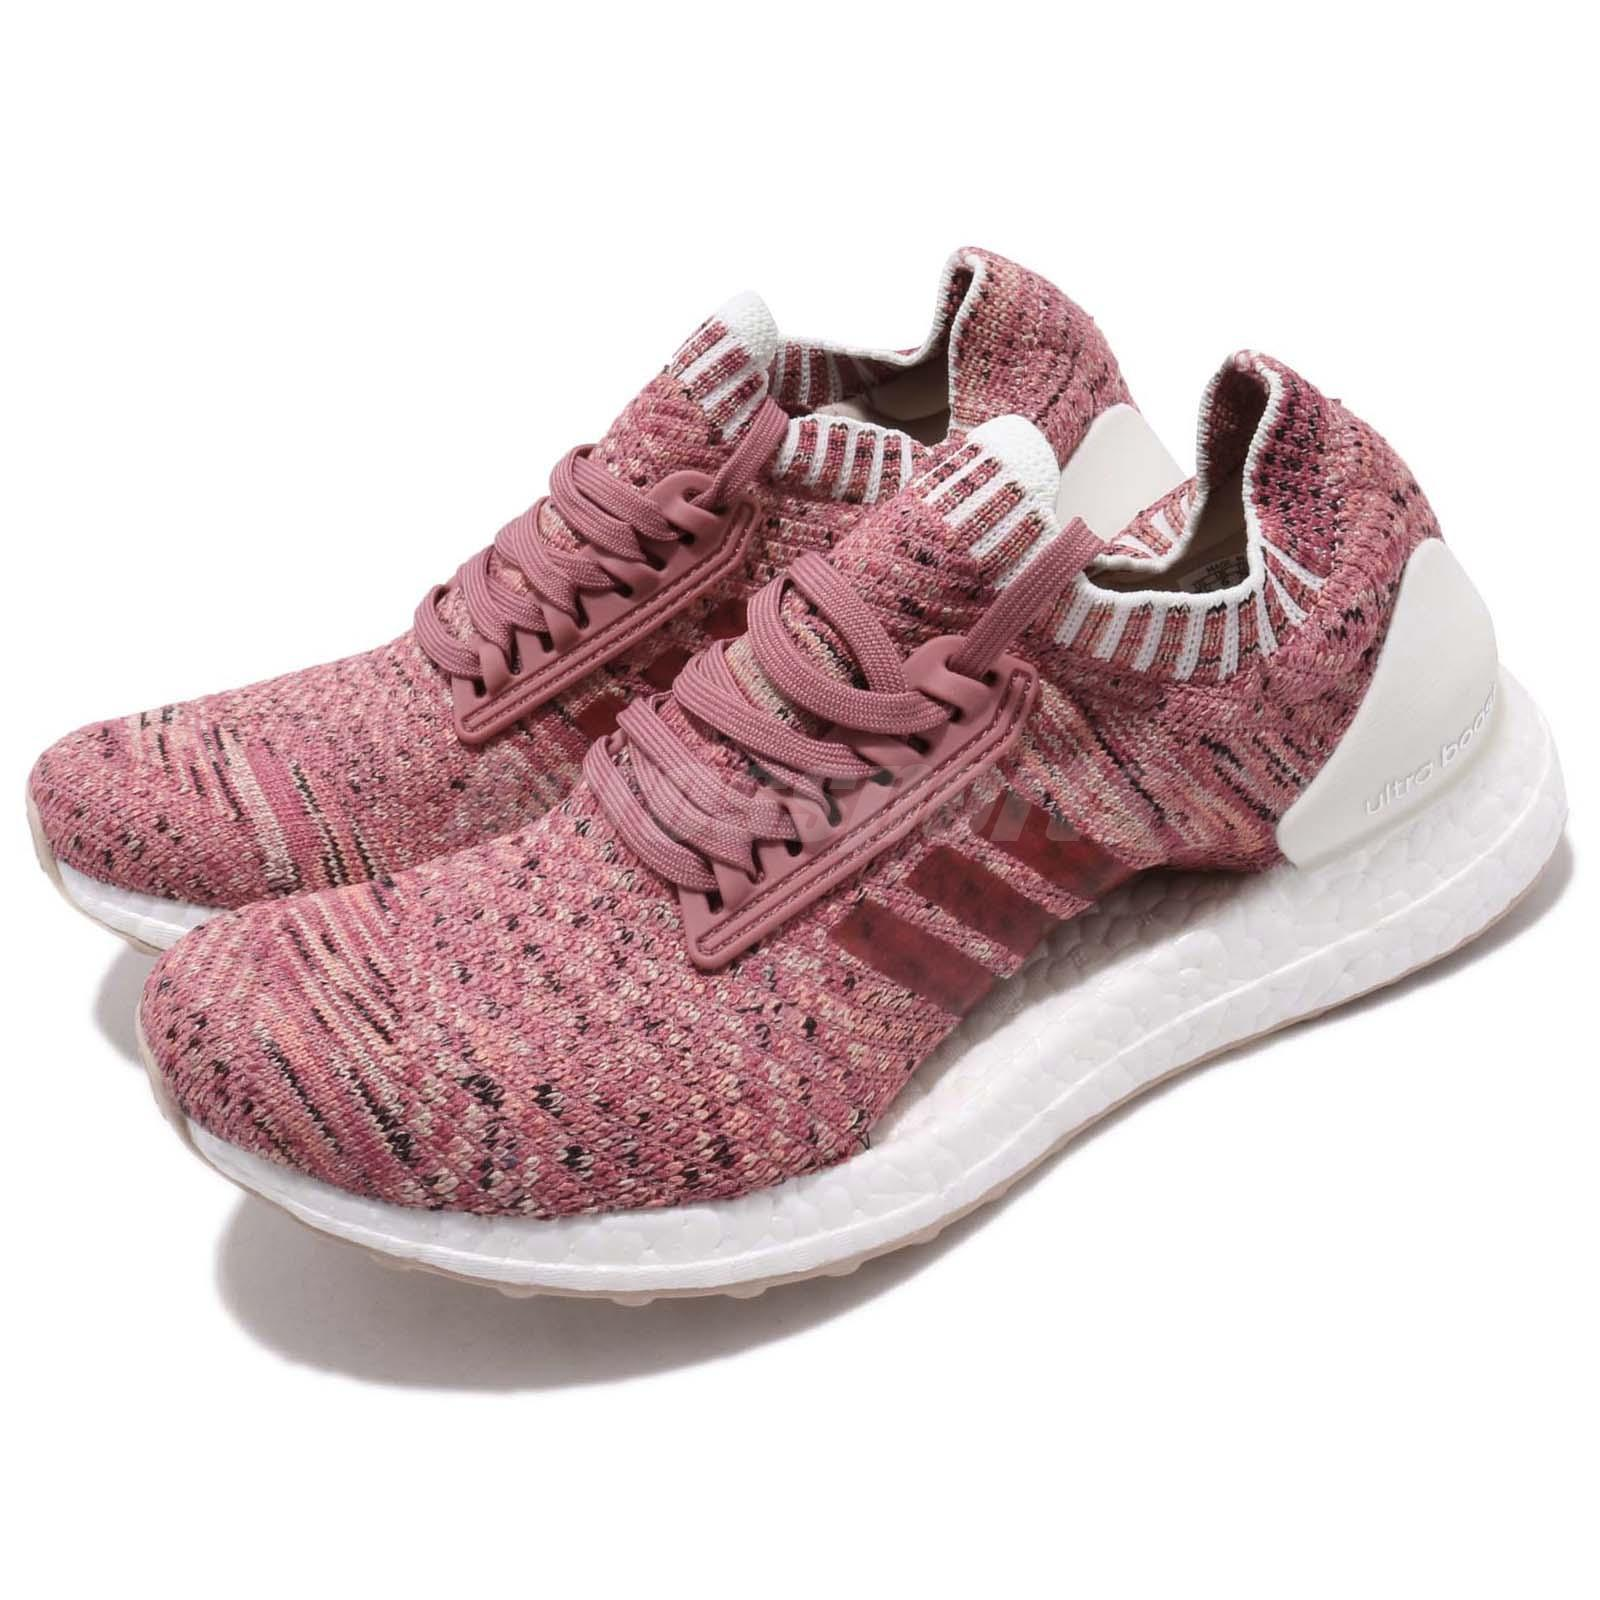 f08c28b497c Details about adidas UltraBOOST X Trace Maroon Ash Pearl Chalk Coral Women  Running Shoe BB6510